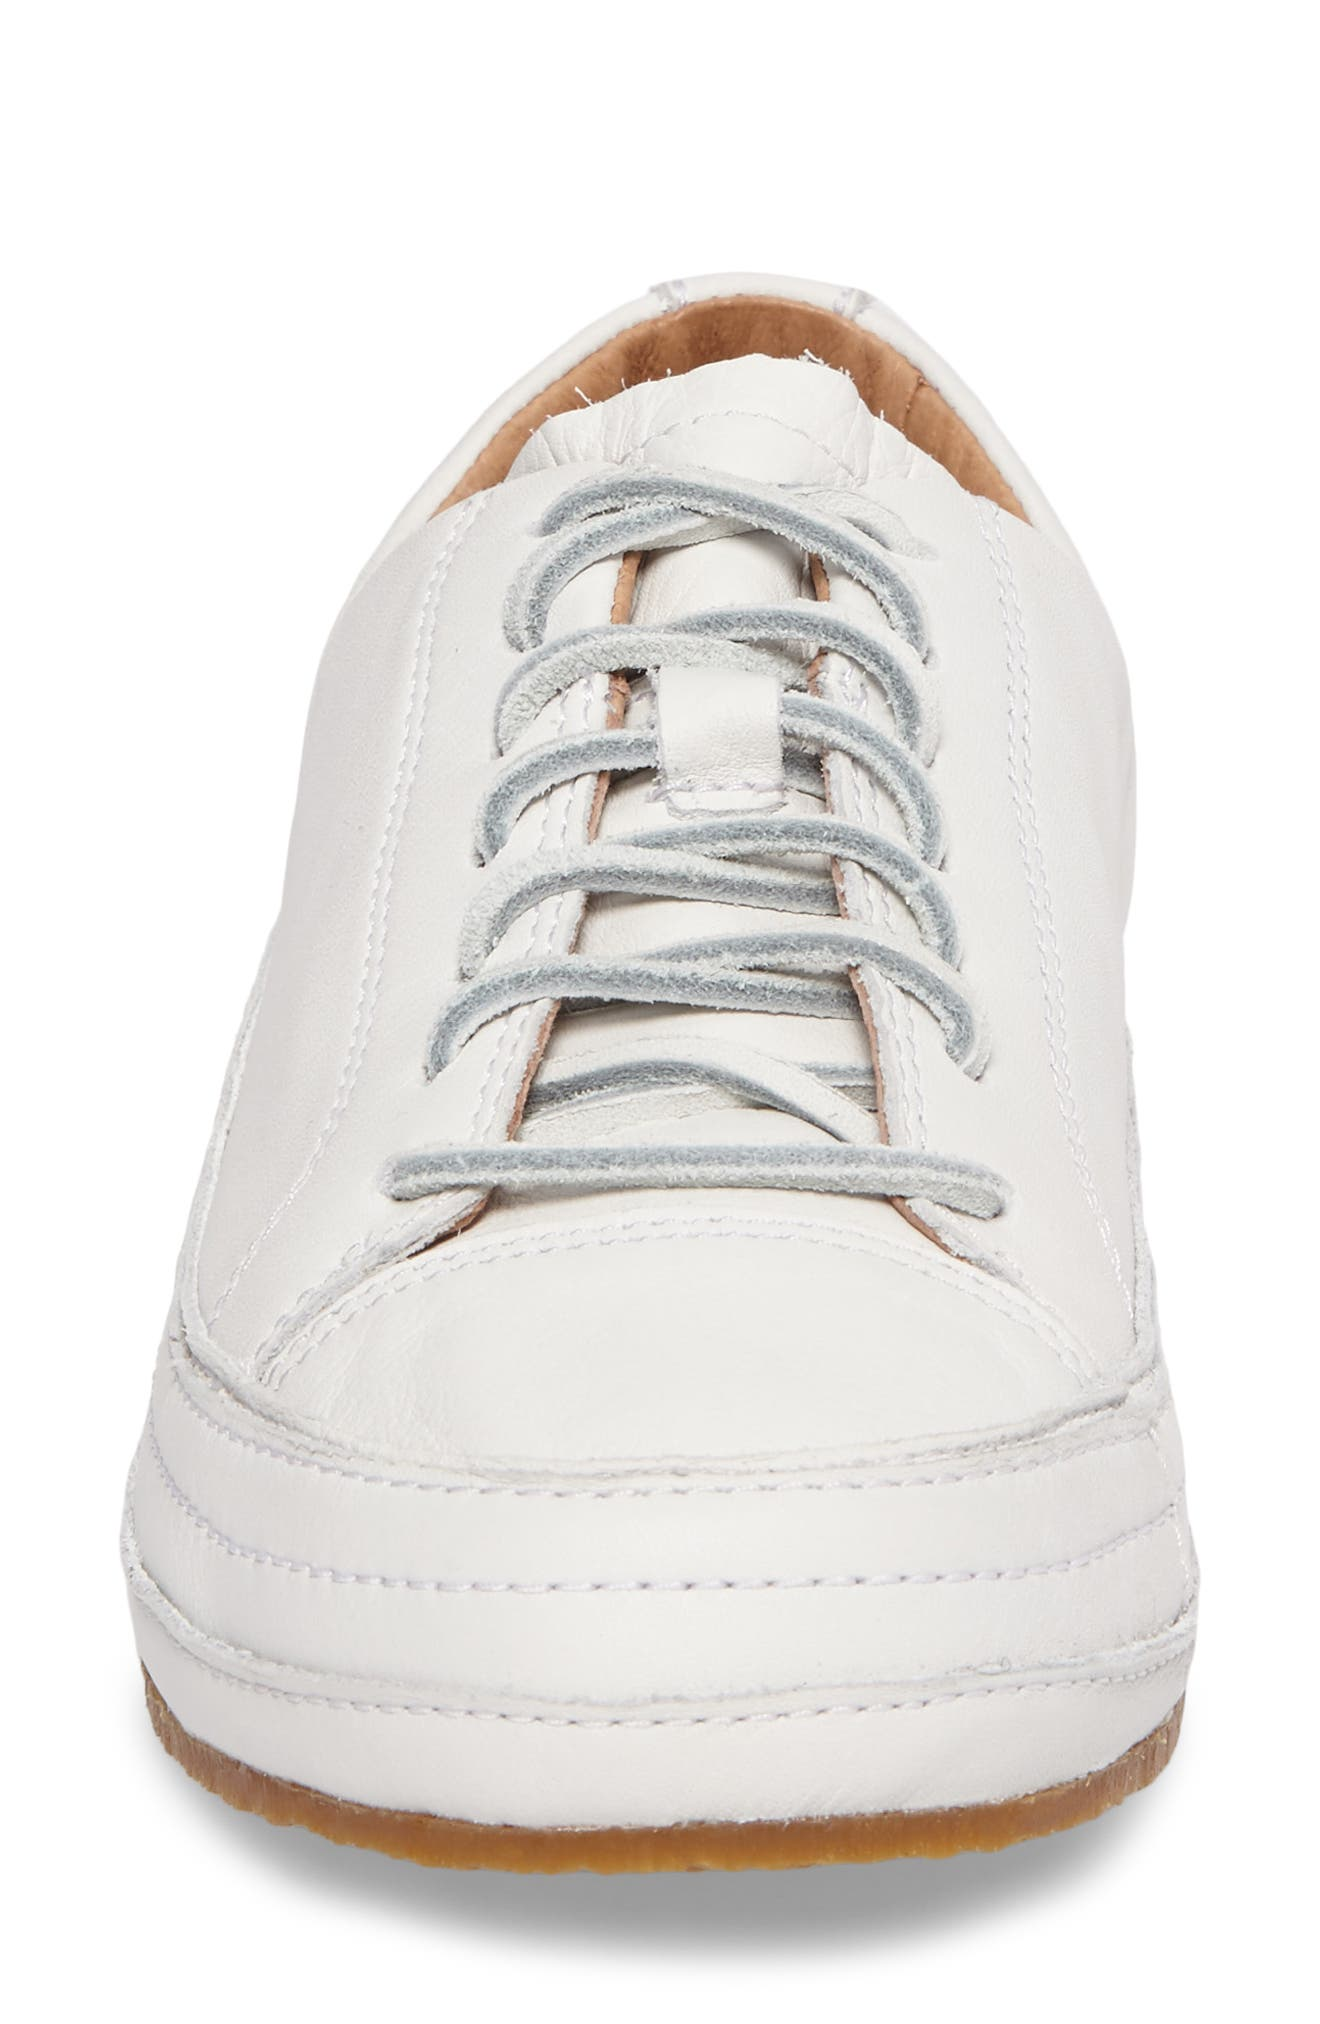 Blake Sneaker,                             Alternate thumbnail 4, color,                             White Leather